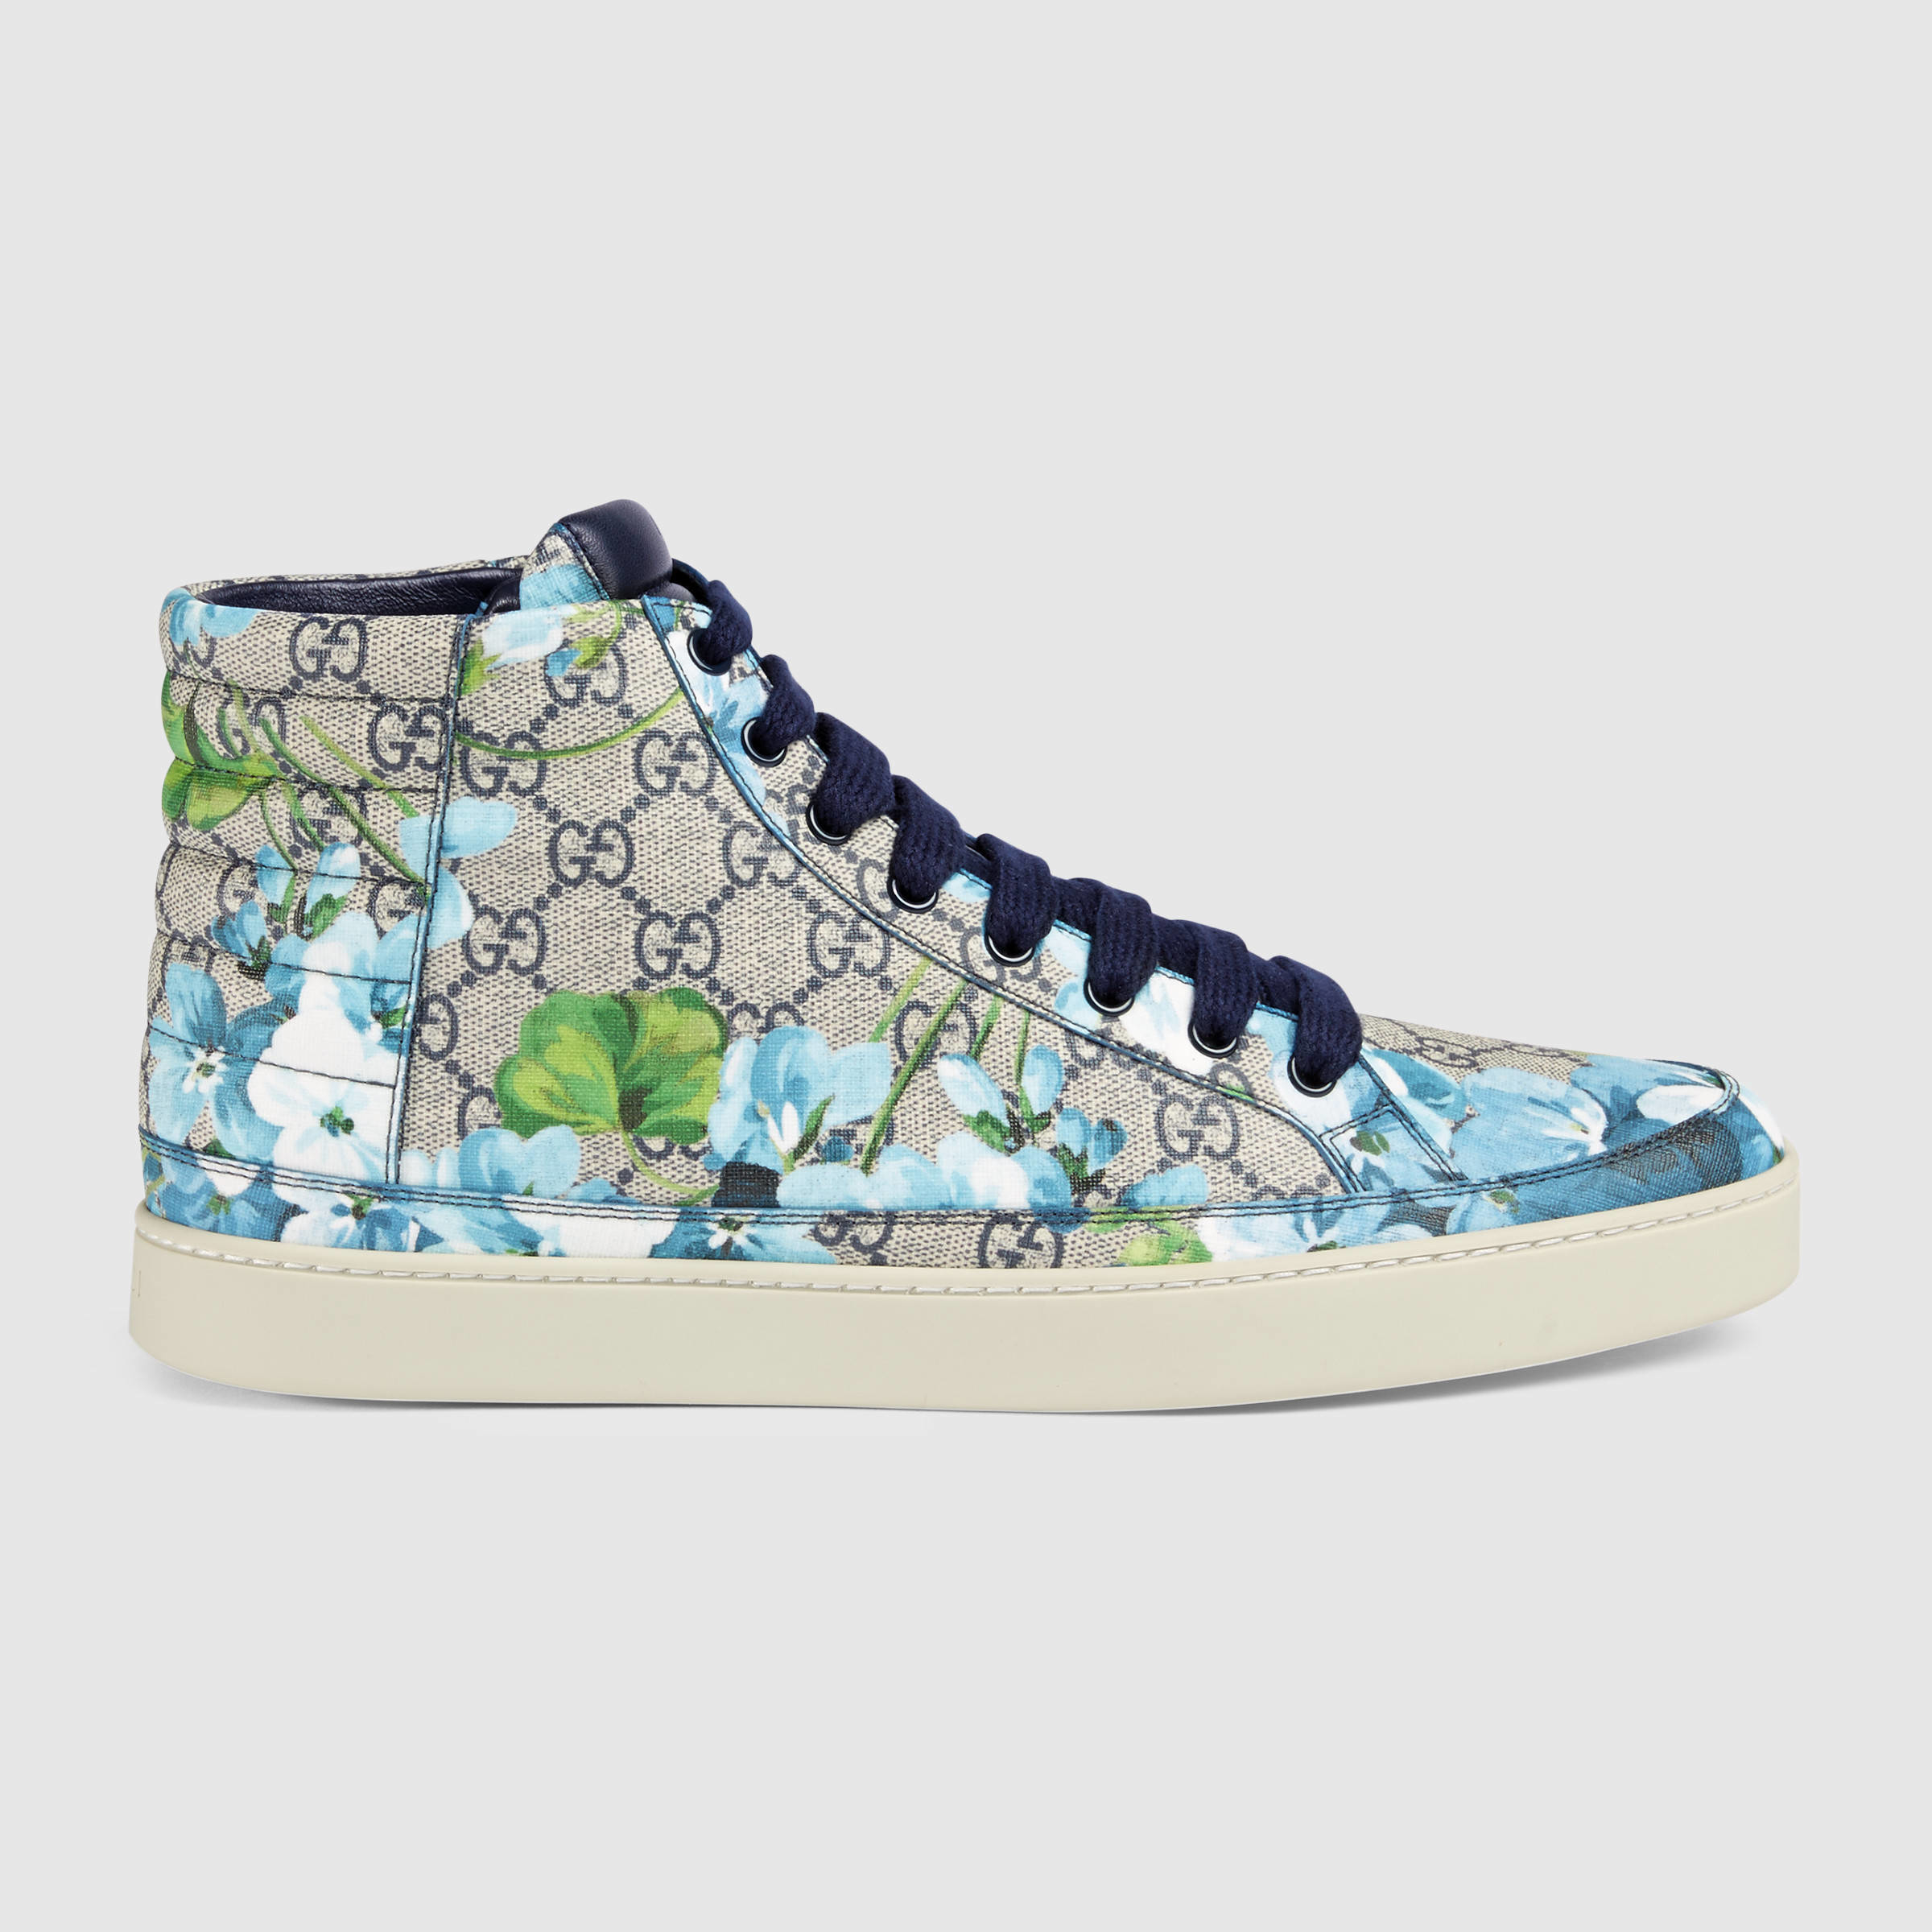 eaf47995786 Lyst - Gucci Gg Blooms High-top Sneaker in Blue for Men